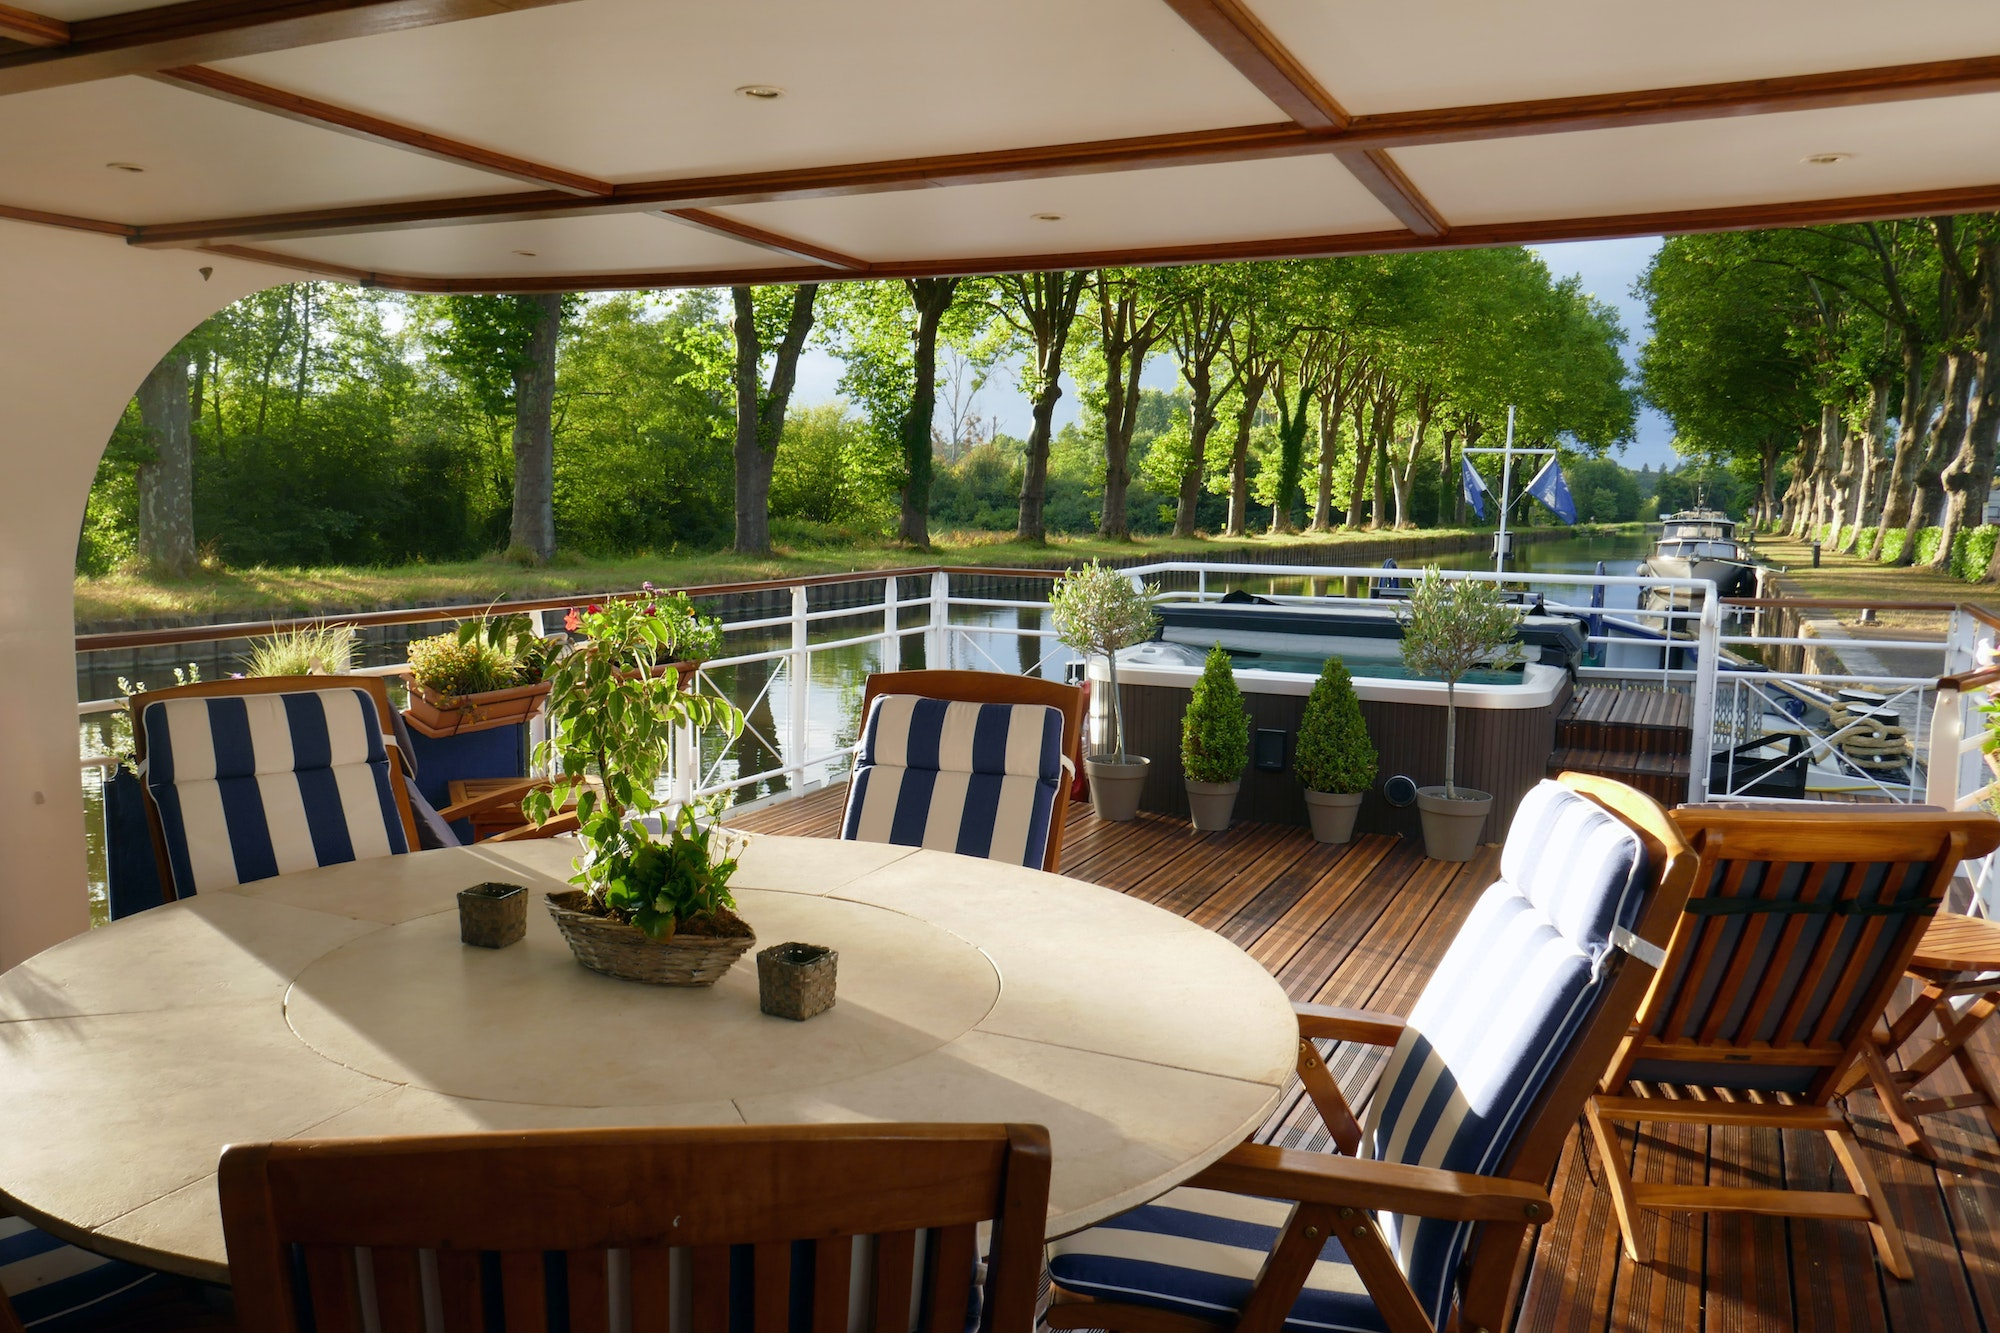 Most barge cruises, like this one on the Canal du Midi in France, take place aboard converted historic vessels, but the boats still have many of the same amenities as a boutique hotel.